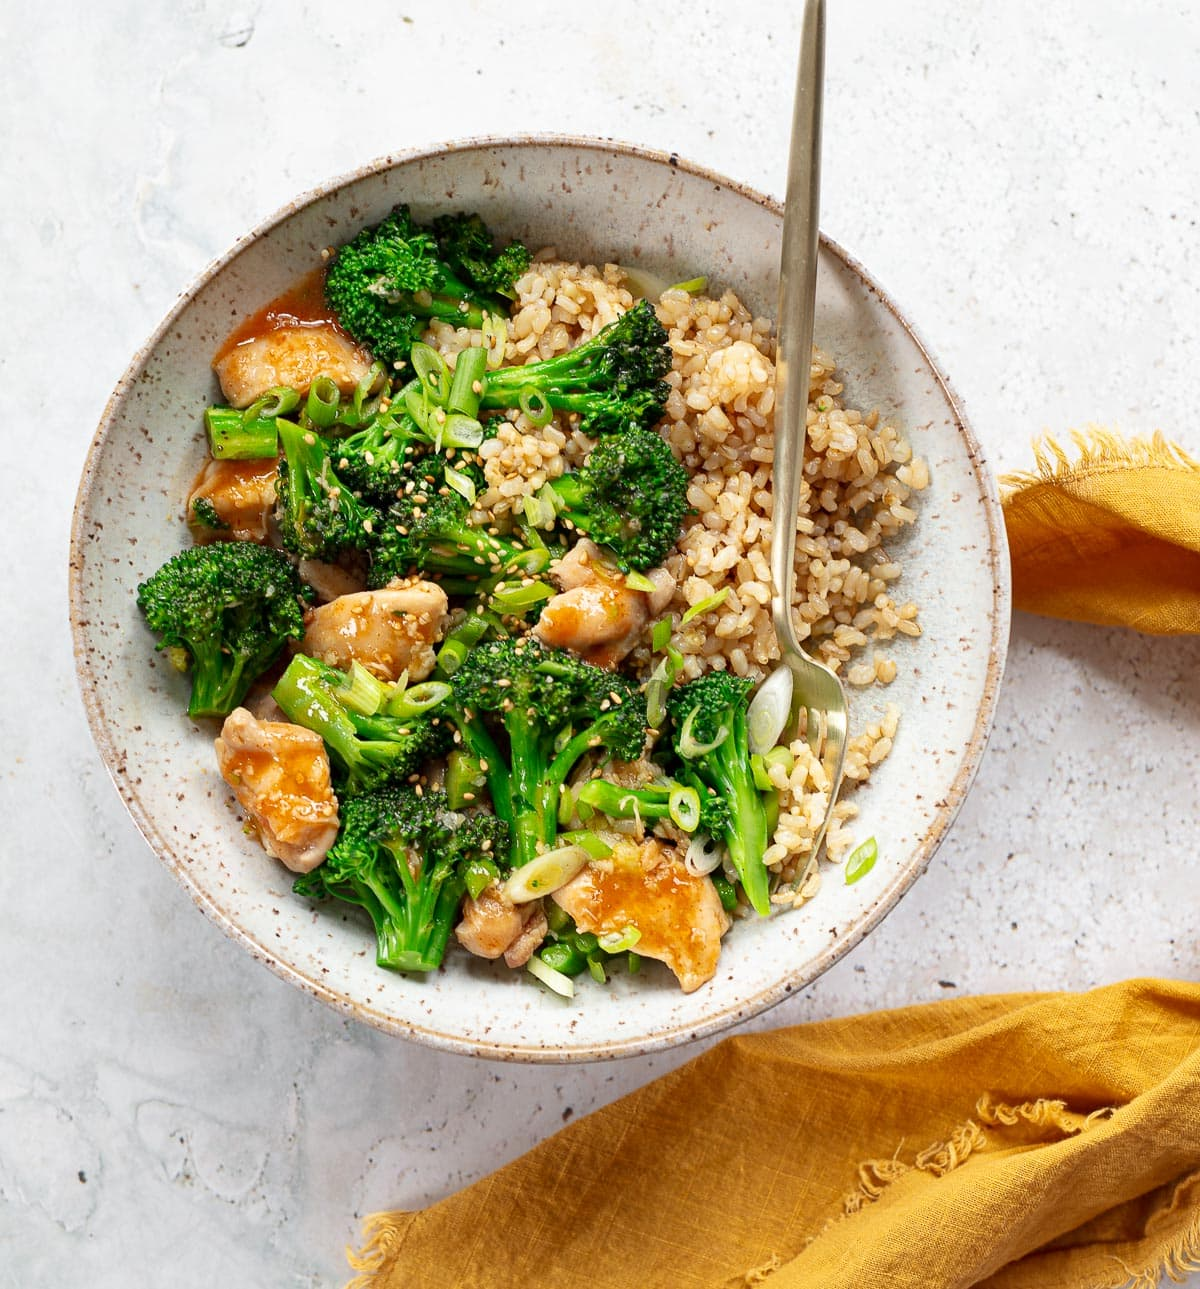 A gray ceramic bowl full of short grain brown rice, chunks of chicken and broccoli florets in a sesame glaze.